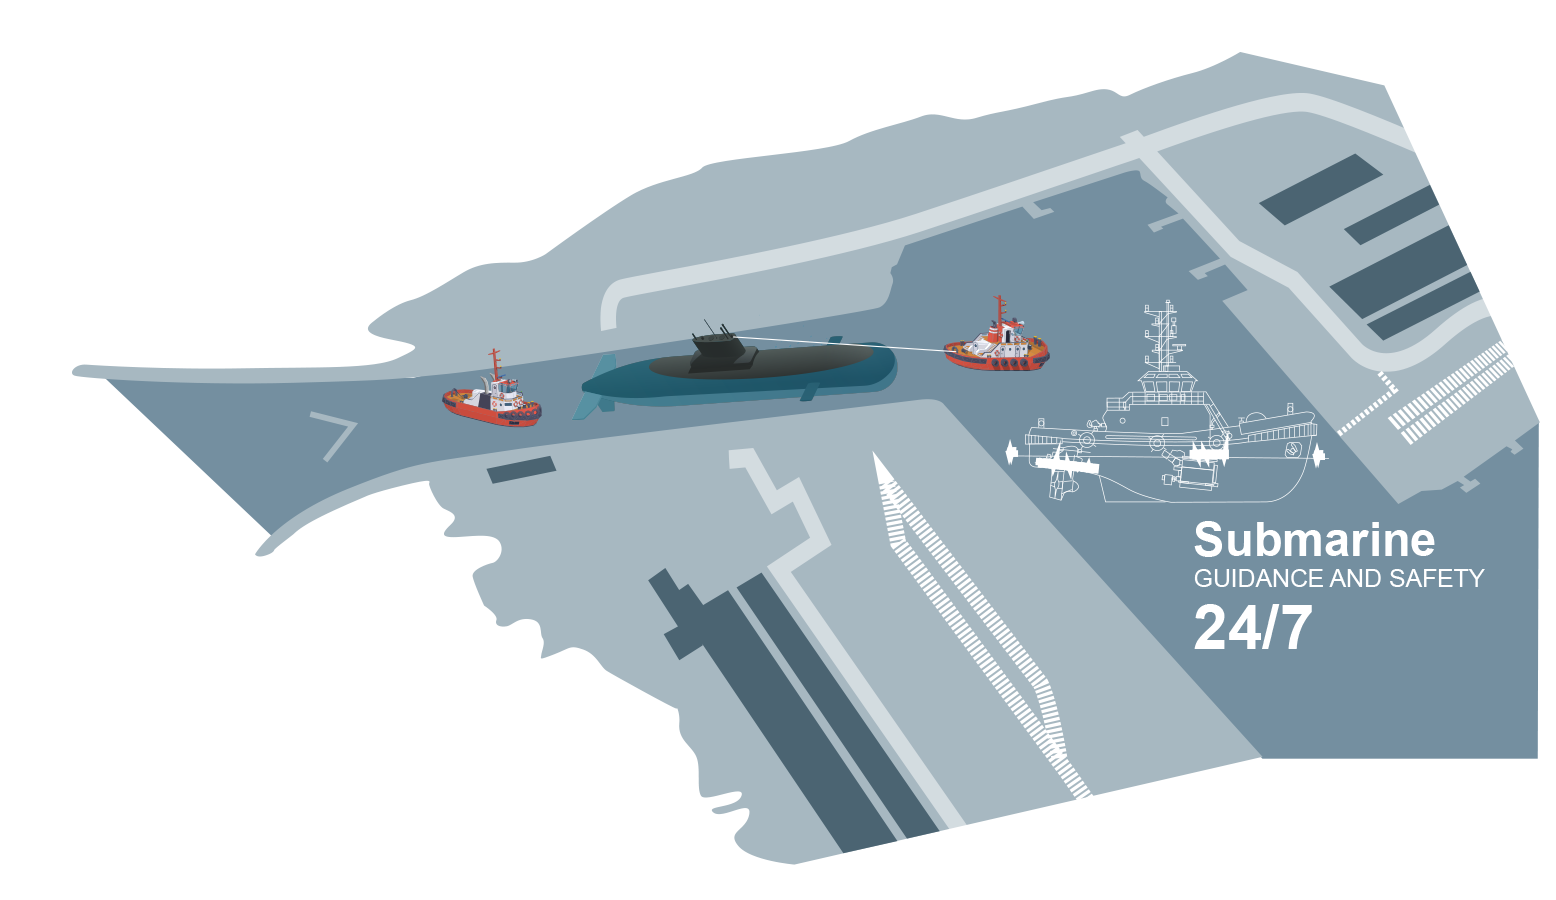 Cardiff Submarine Guidance